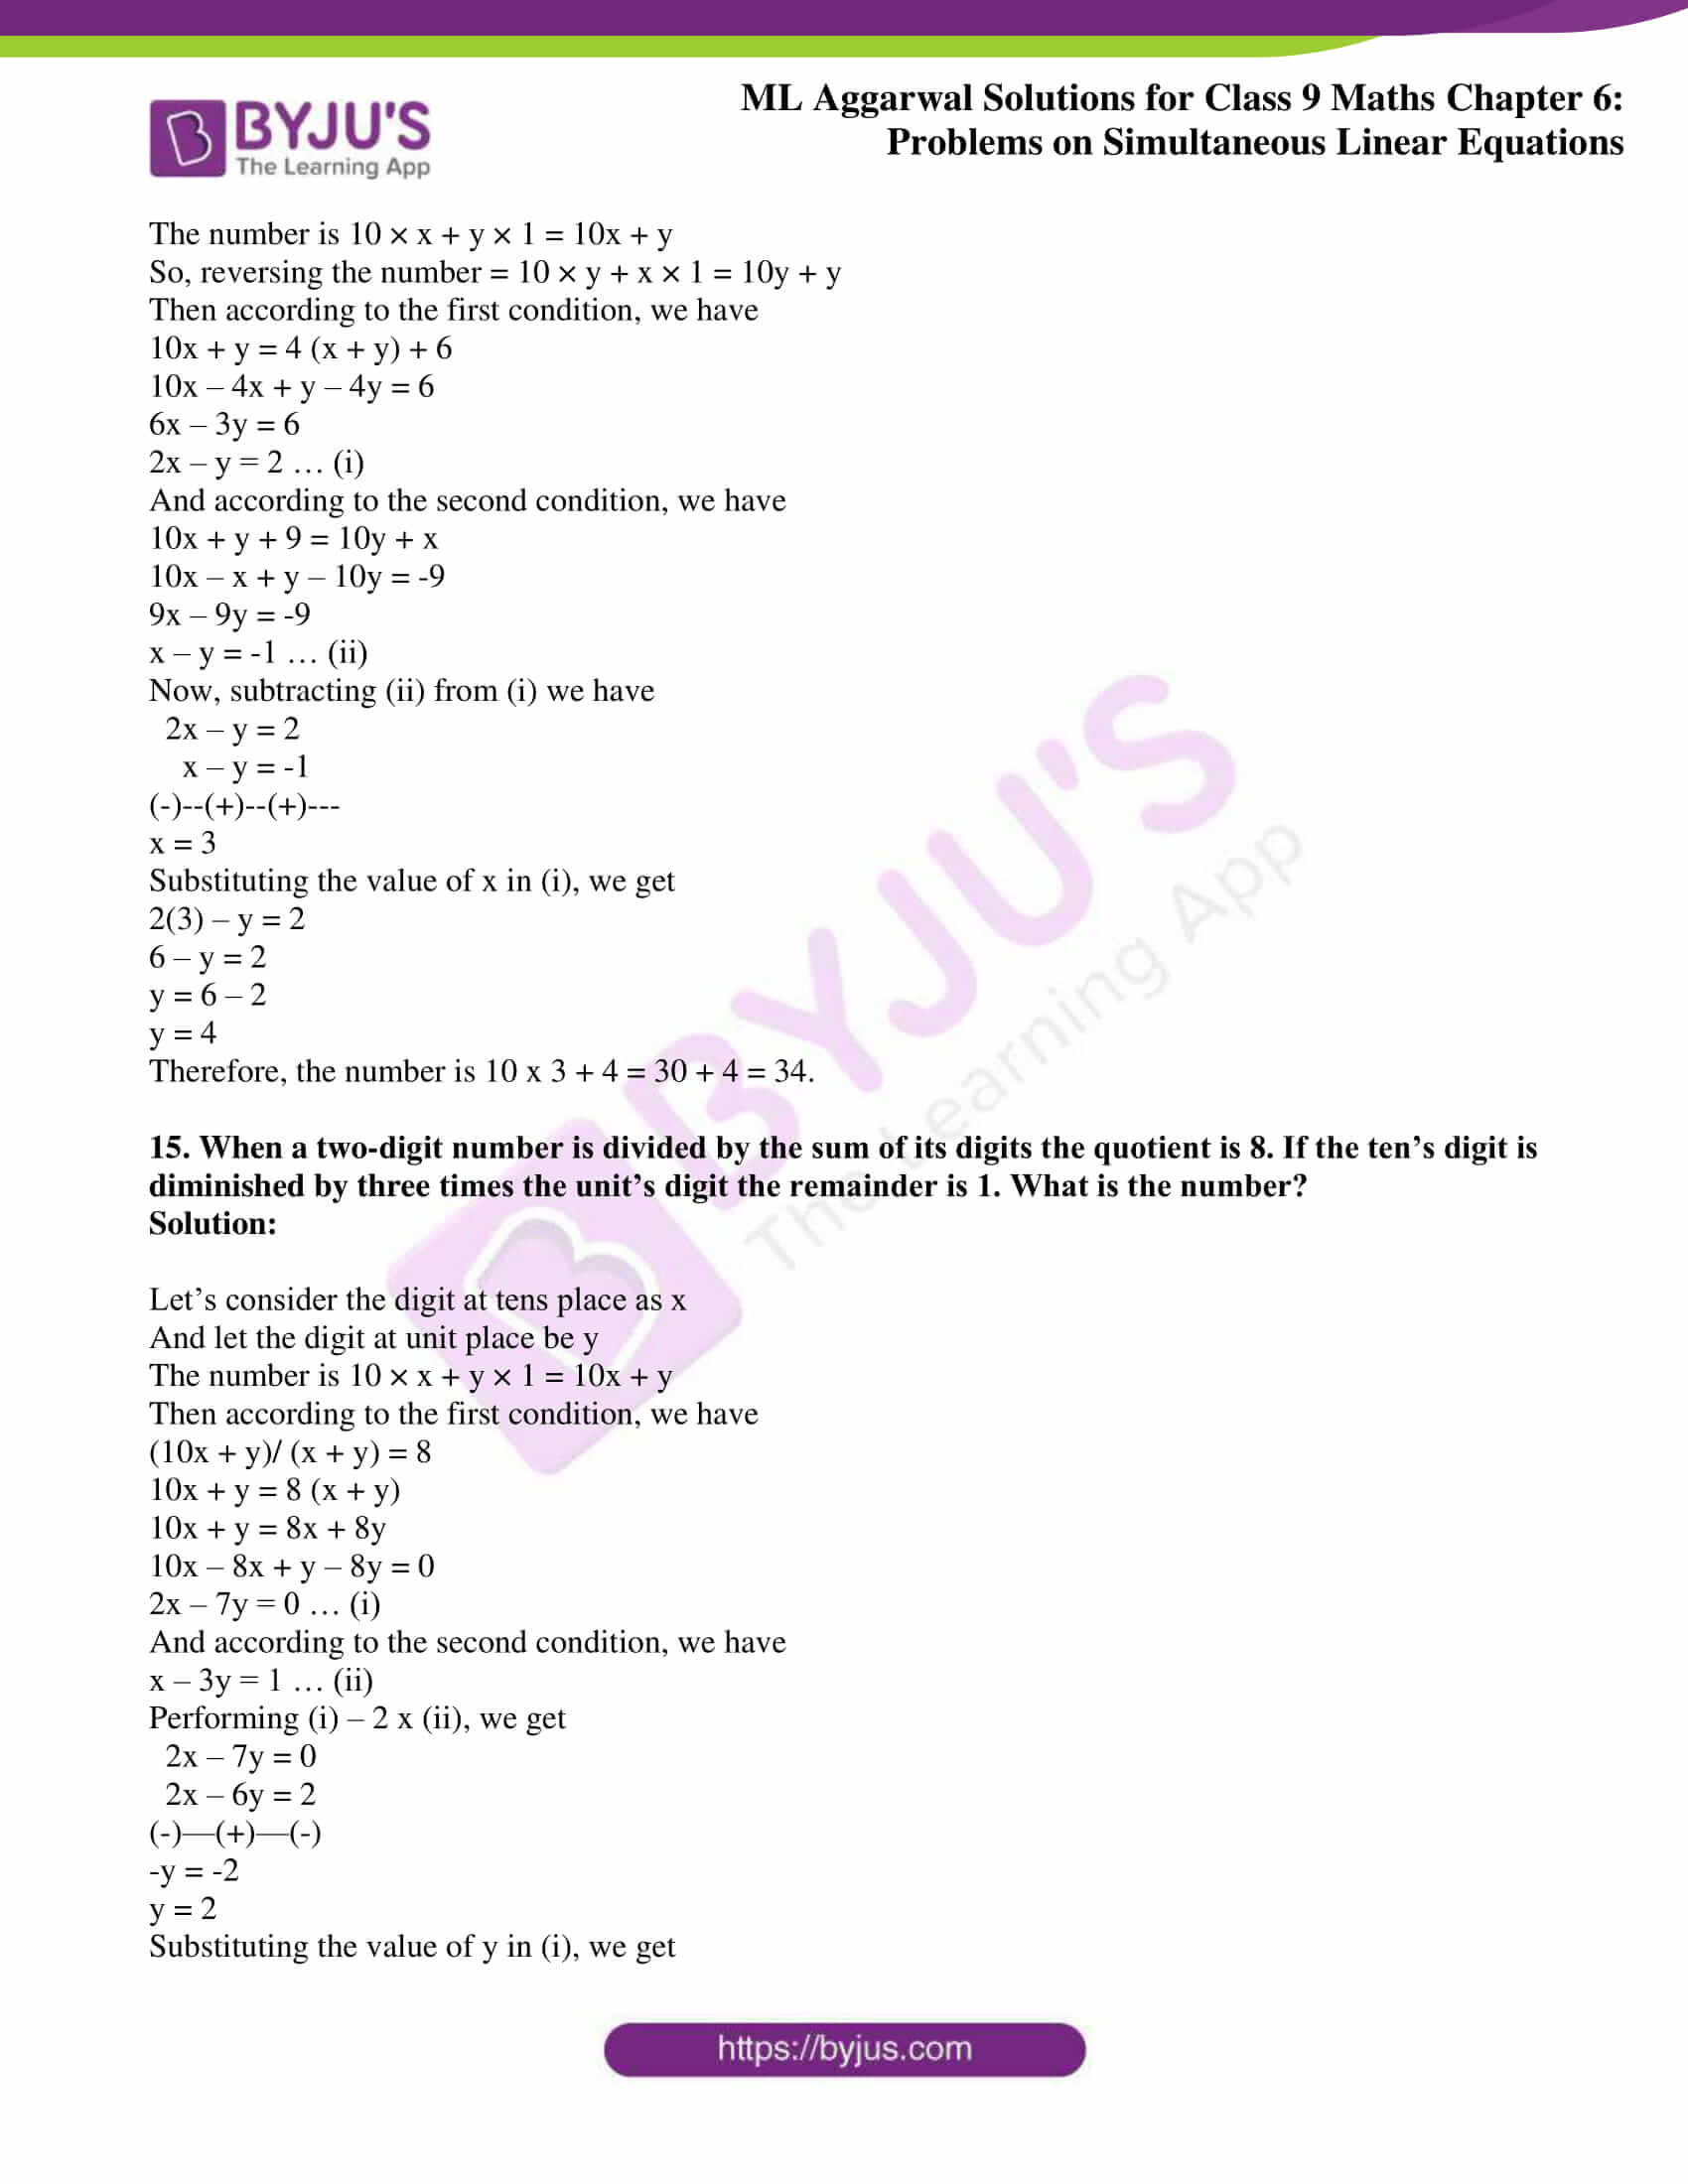 ml aggarwal solutions for class 9 maths chapter 6 08